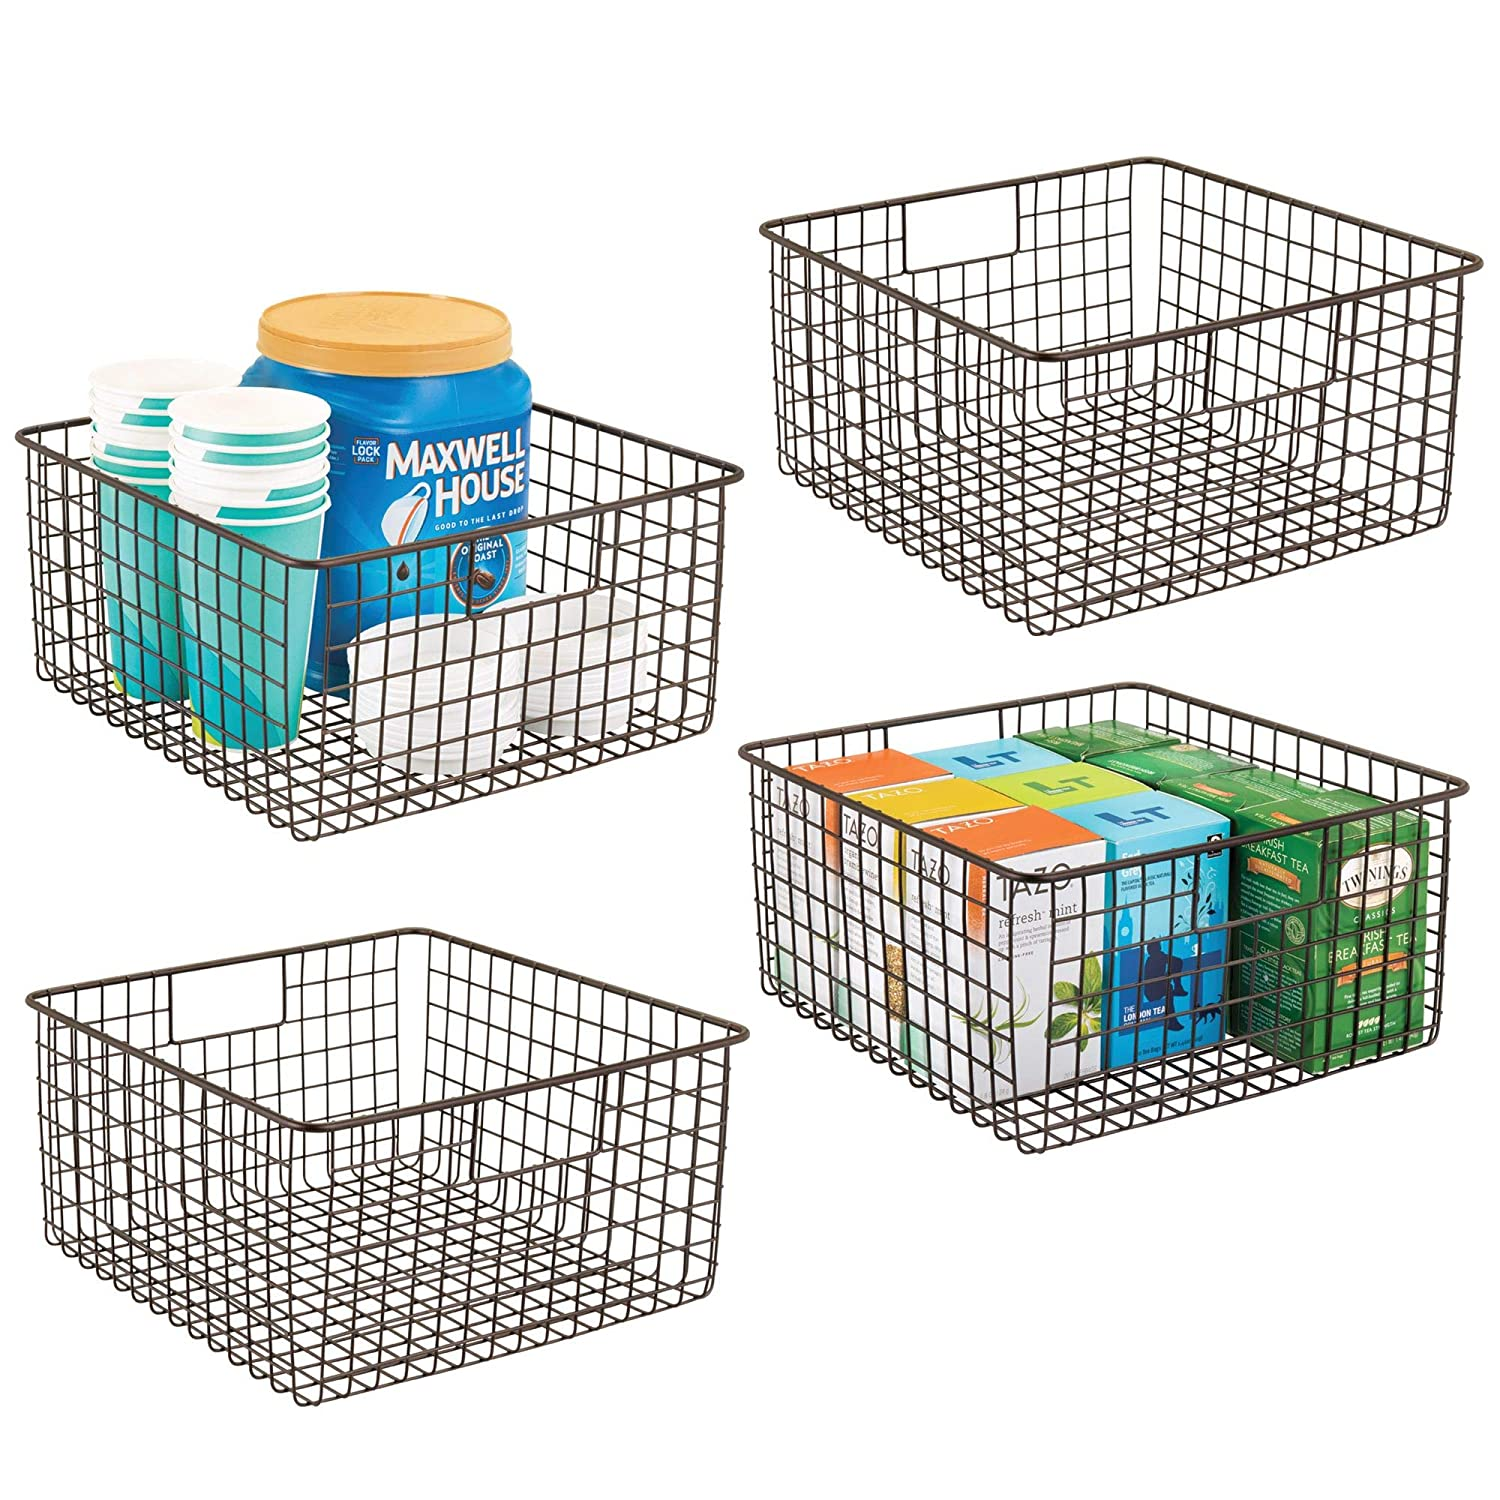 "mDesign Farmhouse Decor Metal Wire Food Storage Organizer, Bin Basket with Handles for Kitchen Cabinets, Pantry, Bathroom, Laundry Room, Closets, Garage - 12"" x 12"" x 6"" - 4 Pack - Bronze"